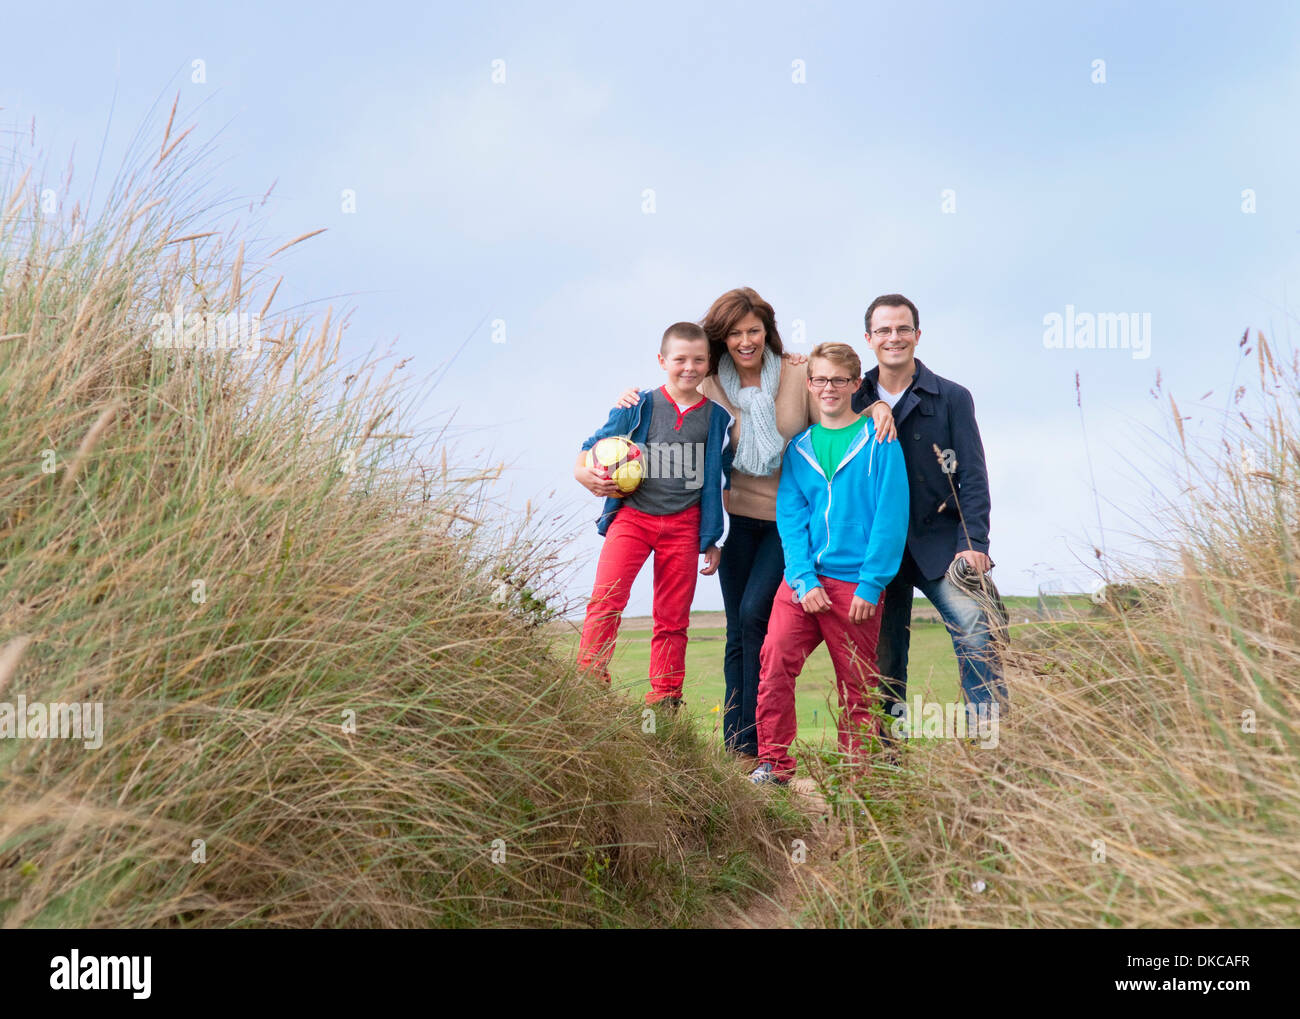 Family portrait on sand dunes - Stock Image